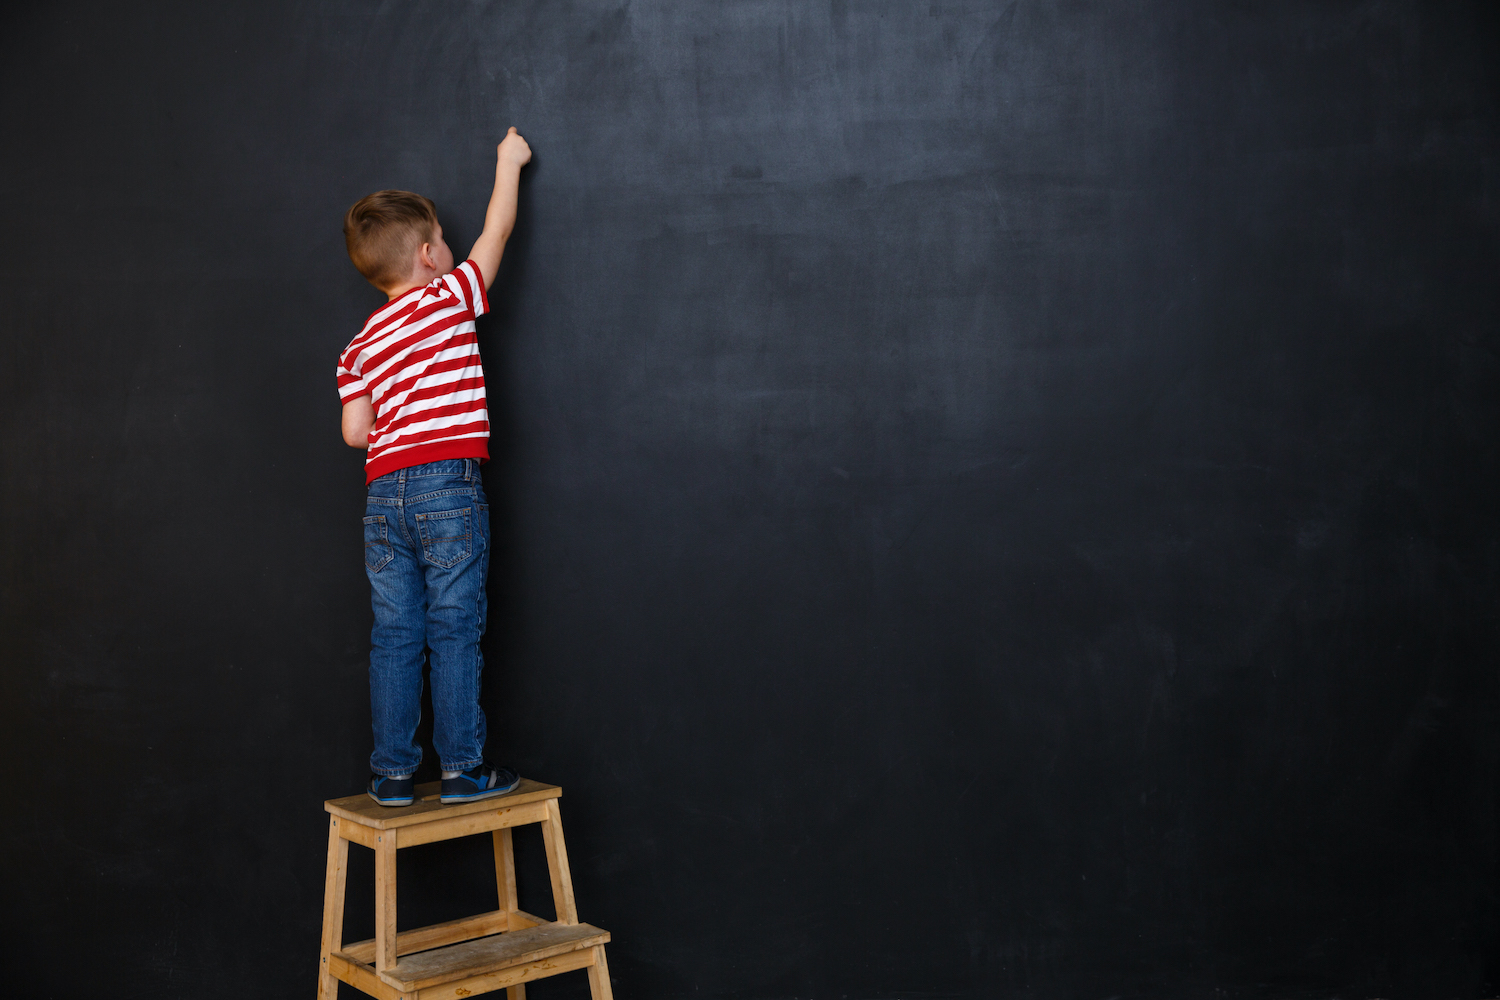 Back view of a little boy standing on ladder and writing with chalk on the backboard in school class